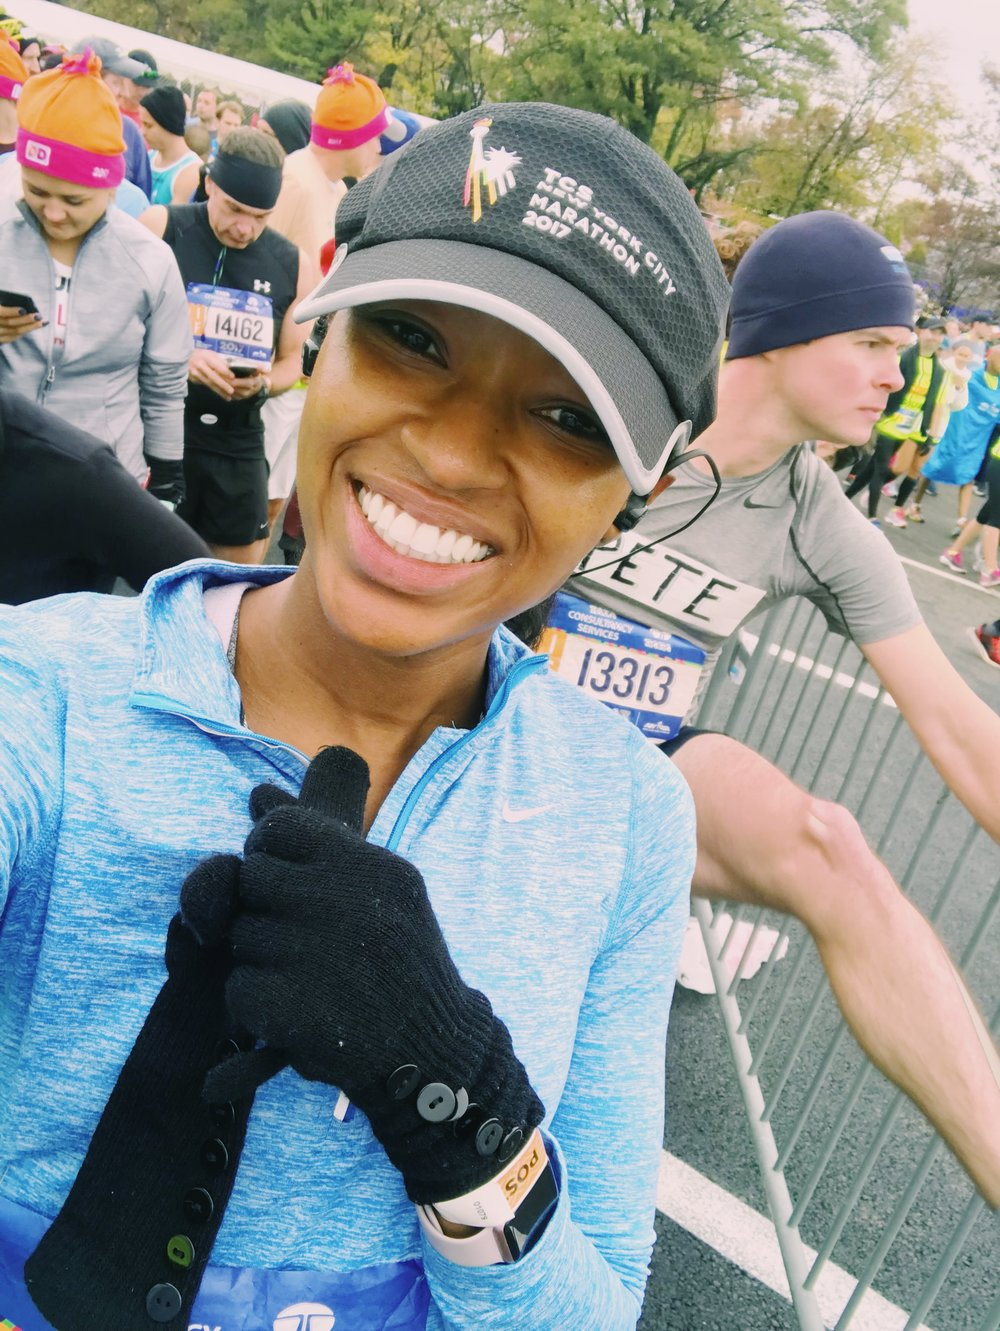 THE NYC MARATHON SERIES - PART 1: THE BACKSTORY - WHY I SIGNED UP TO RUN 26.2 MILES